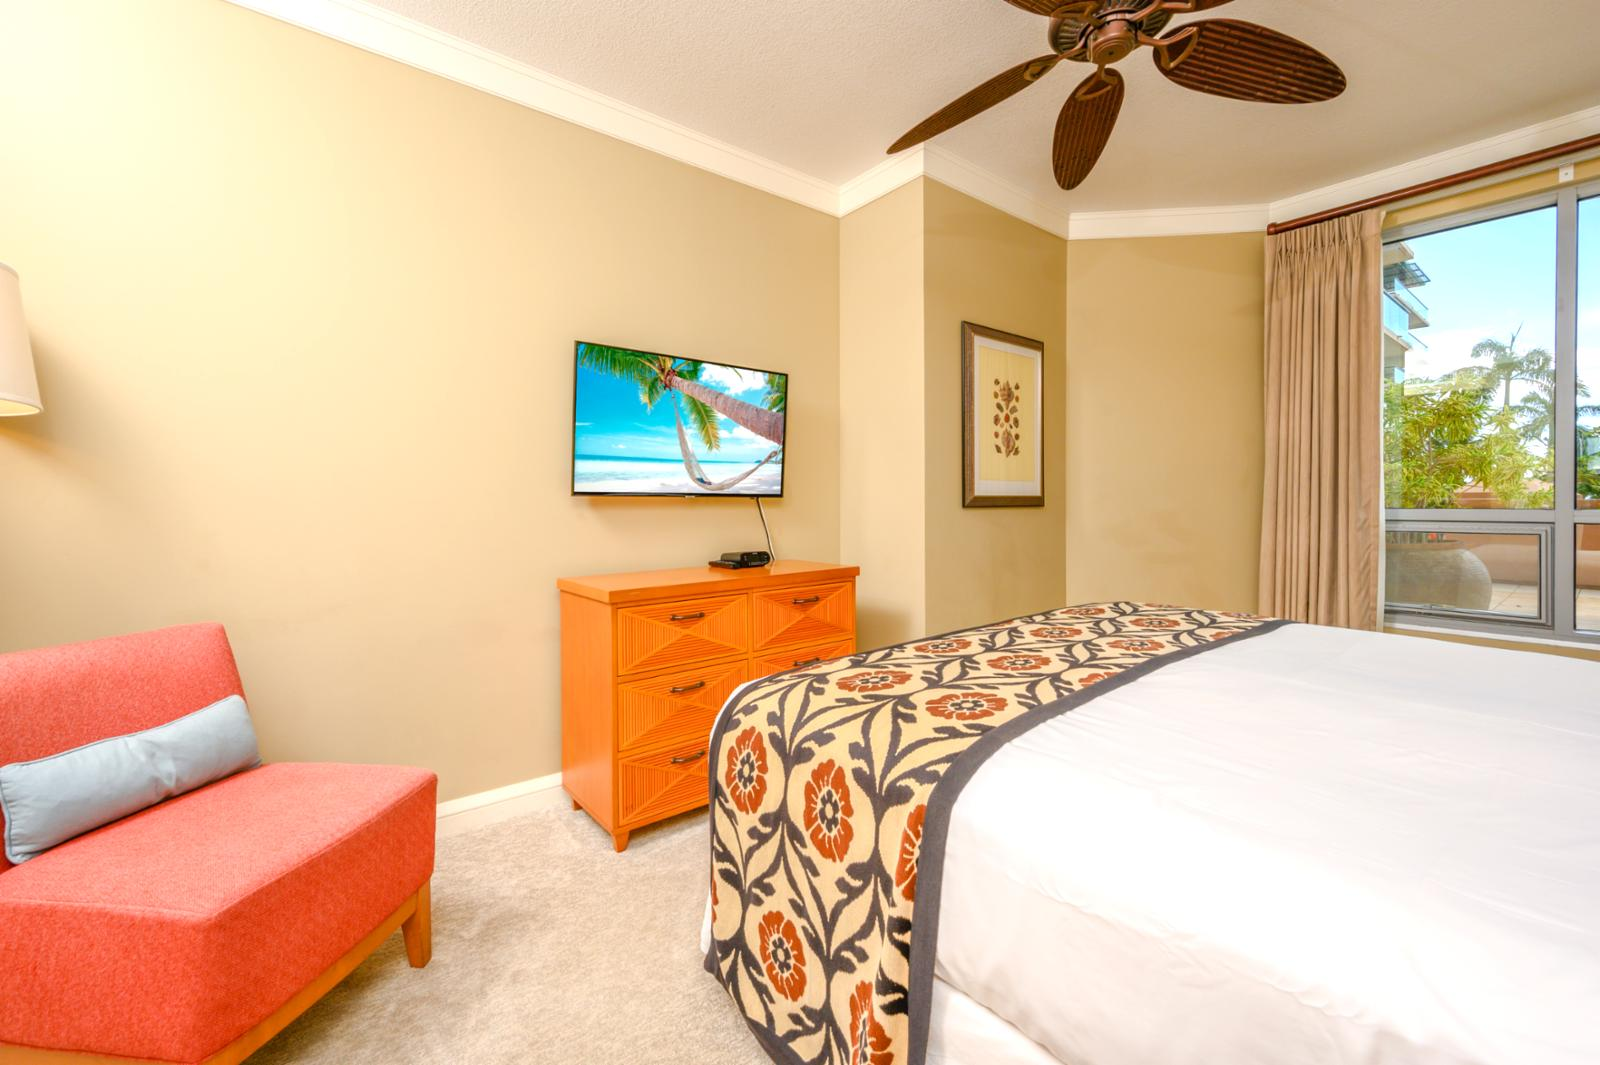 Stunning guest bedroom, equipped with smart tvs and ceiling fan!